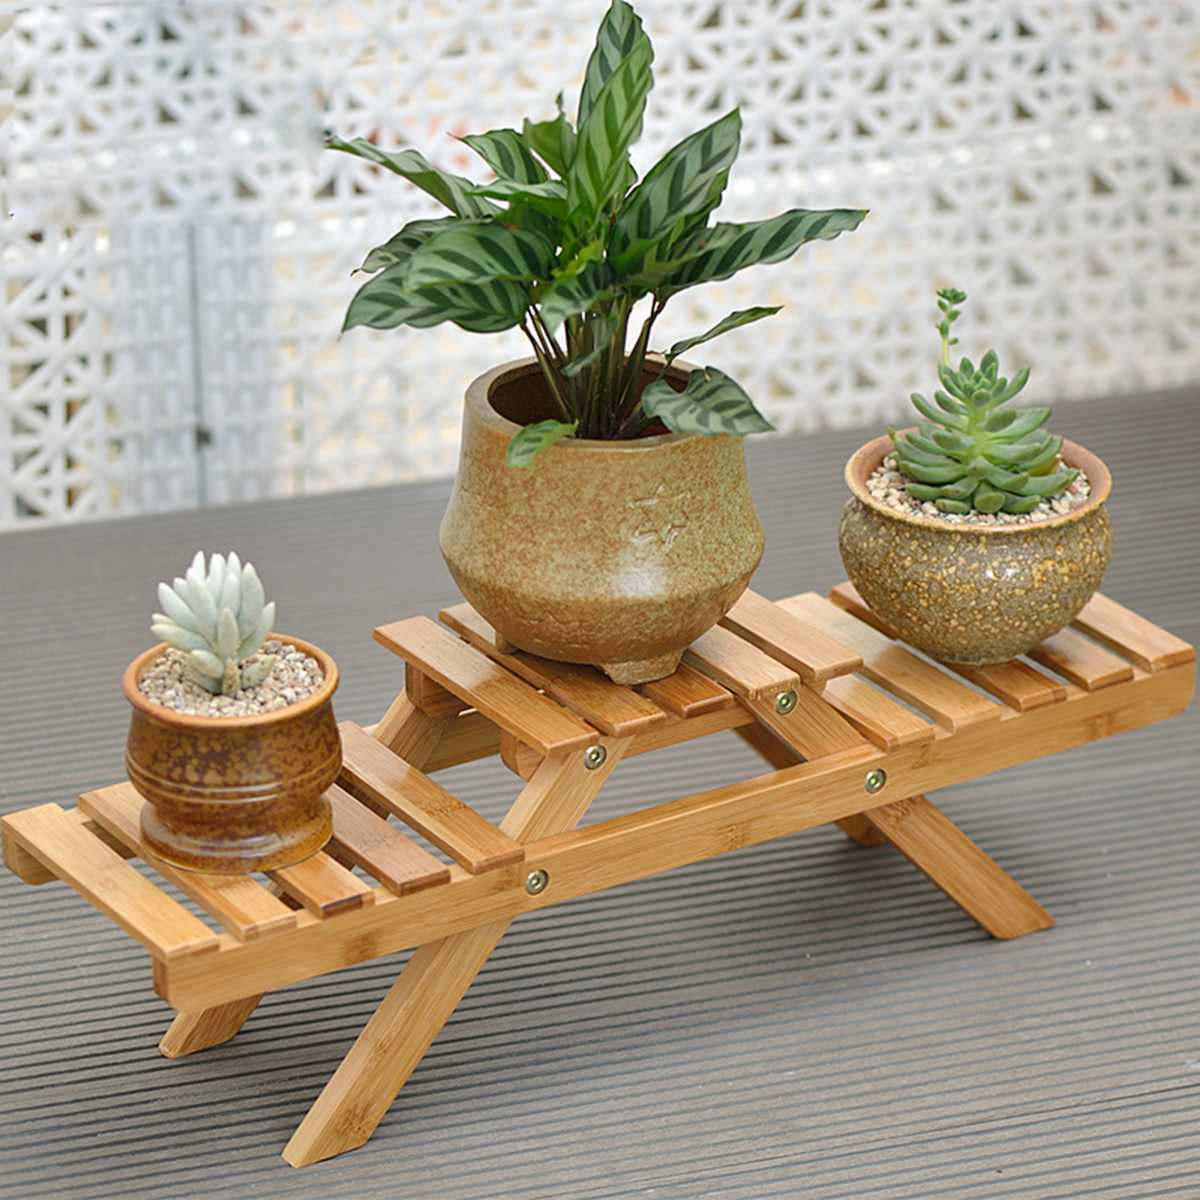 Rack-Holder Shelf-Stand Planter Flower-Pot Table Garden Home-Decor Living-Room Outdoor title=